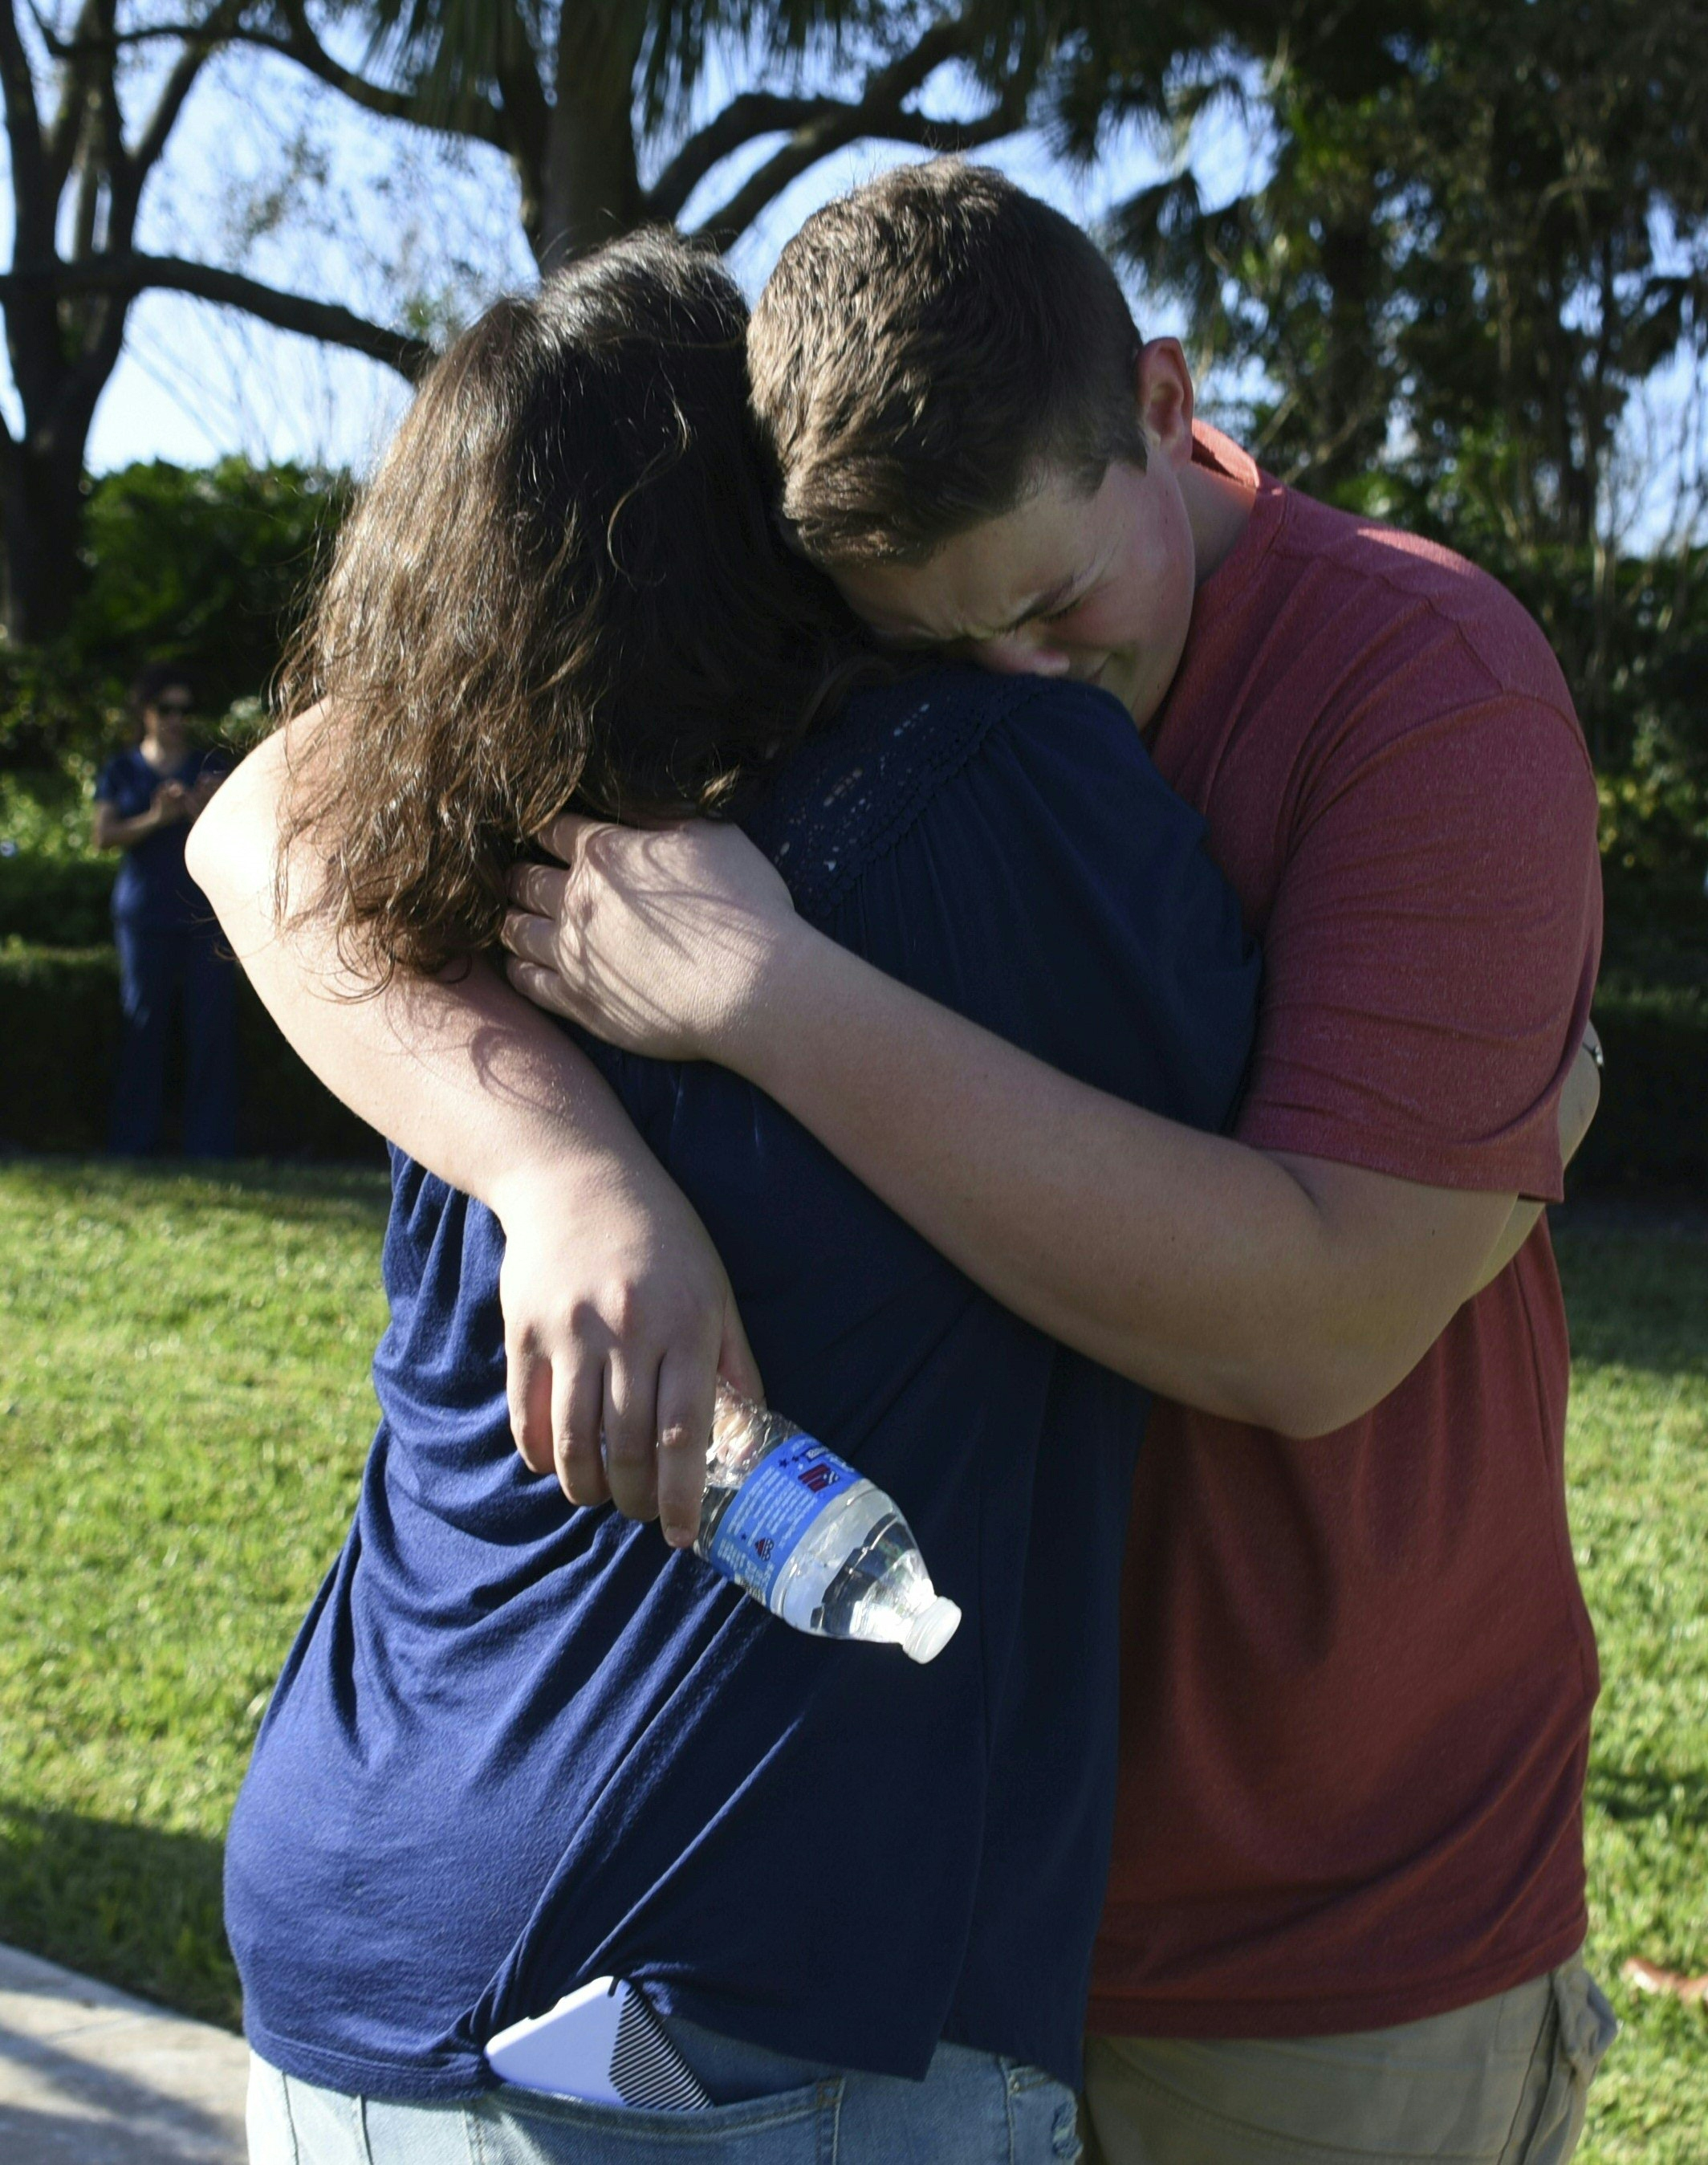 Federal Bureau of Investigation warned about Florida gunman but failed to act